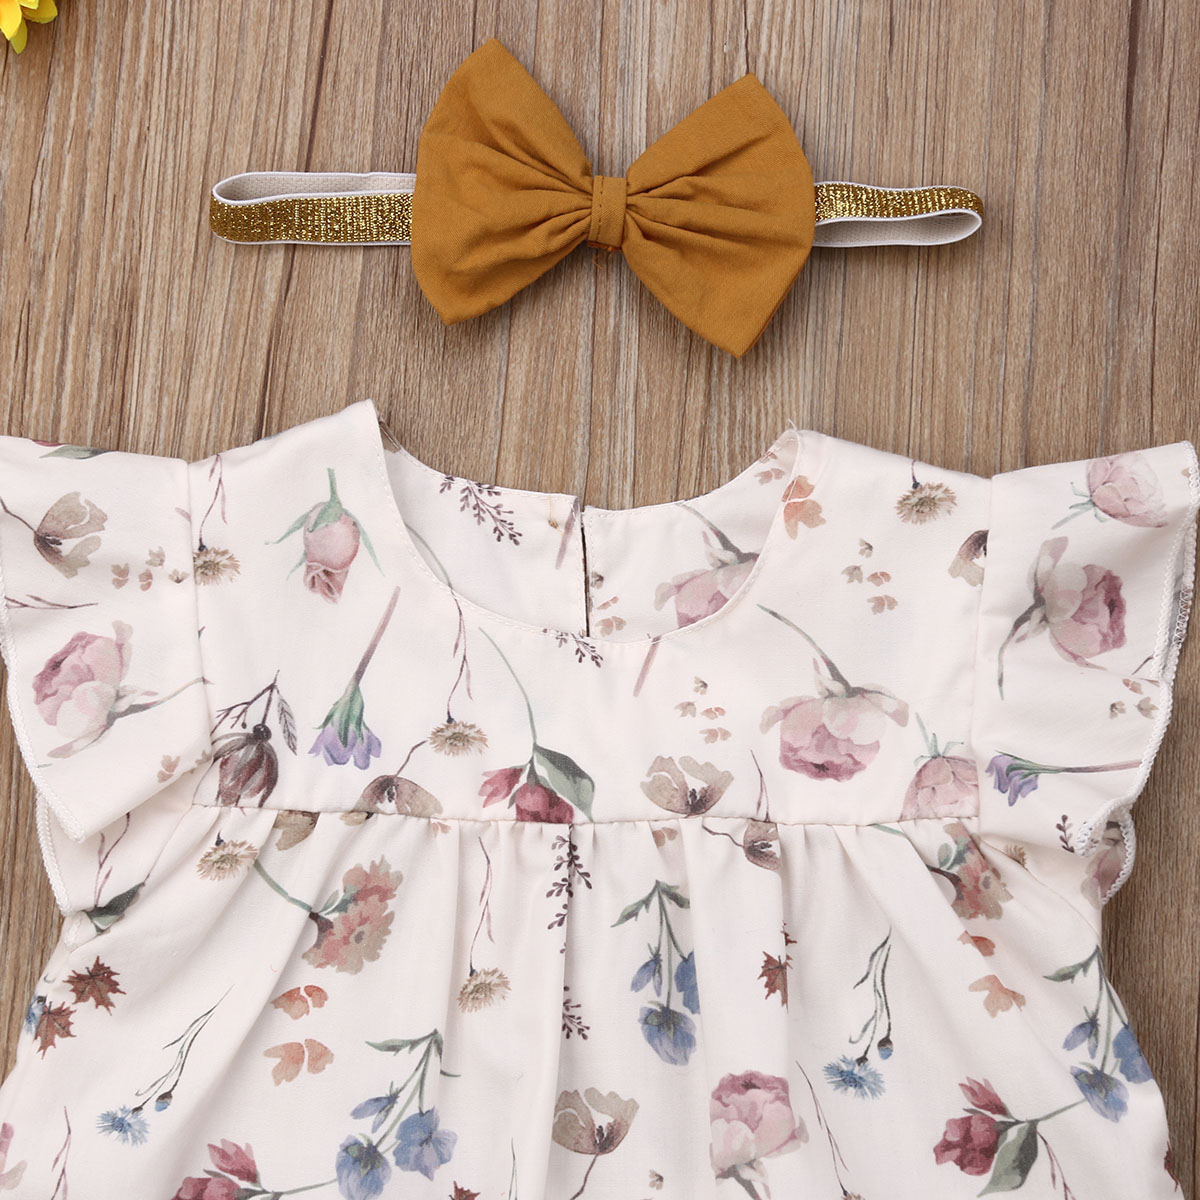 0 3T Infant Baby Girls 4Pcs Outfit Ruffle Sleeveless Floral Tops Solid Short Pants Headband Hat Baby Casual Summer Clothes in Clothing Sets from Mother Kids